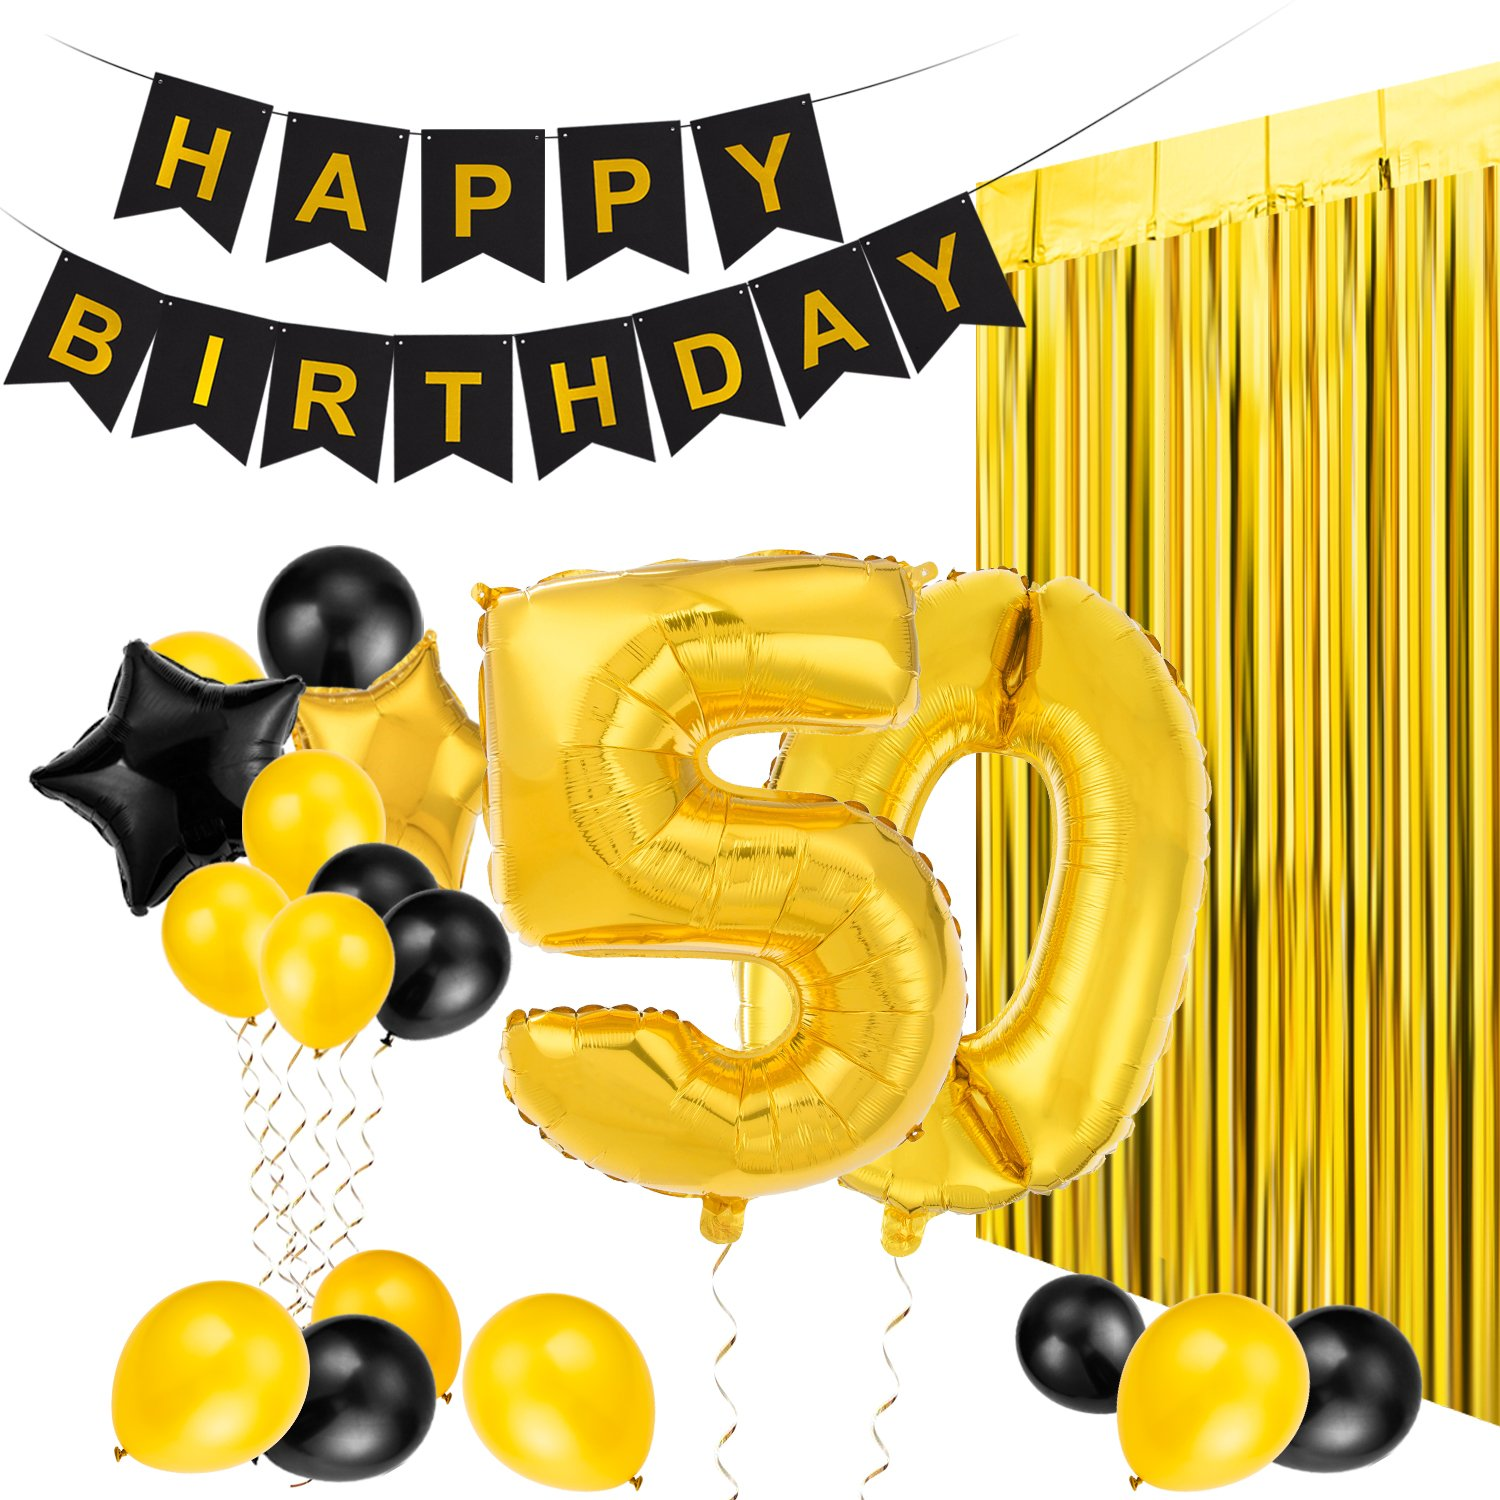 MeiHoyo 50th Birthday Decorations Happy Birthday Banner Party Kit Pack B-Day Celebration Supplies with Gold and Black Stars Balloons and Golden Fringe Curtain (50th) by MeiHoyo